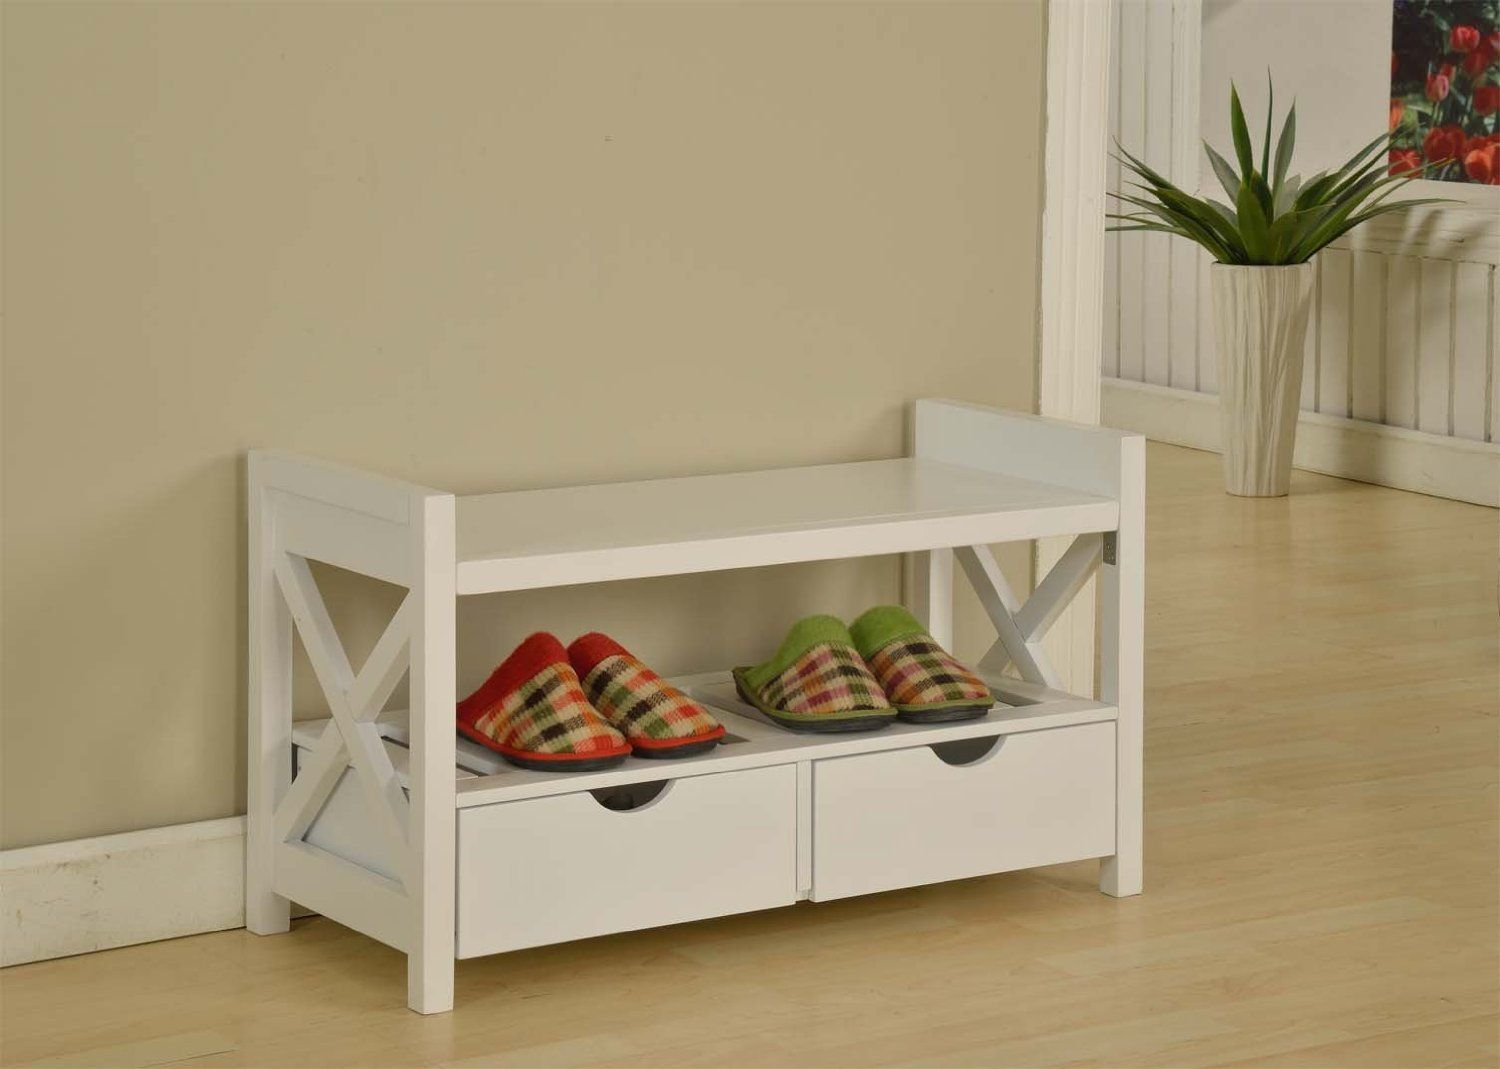 14 Amazing Ikea Shoe Storage Bench Images Design